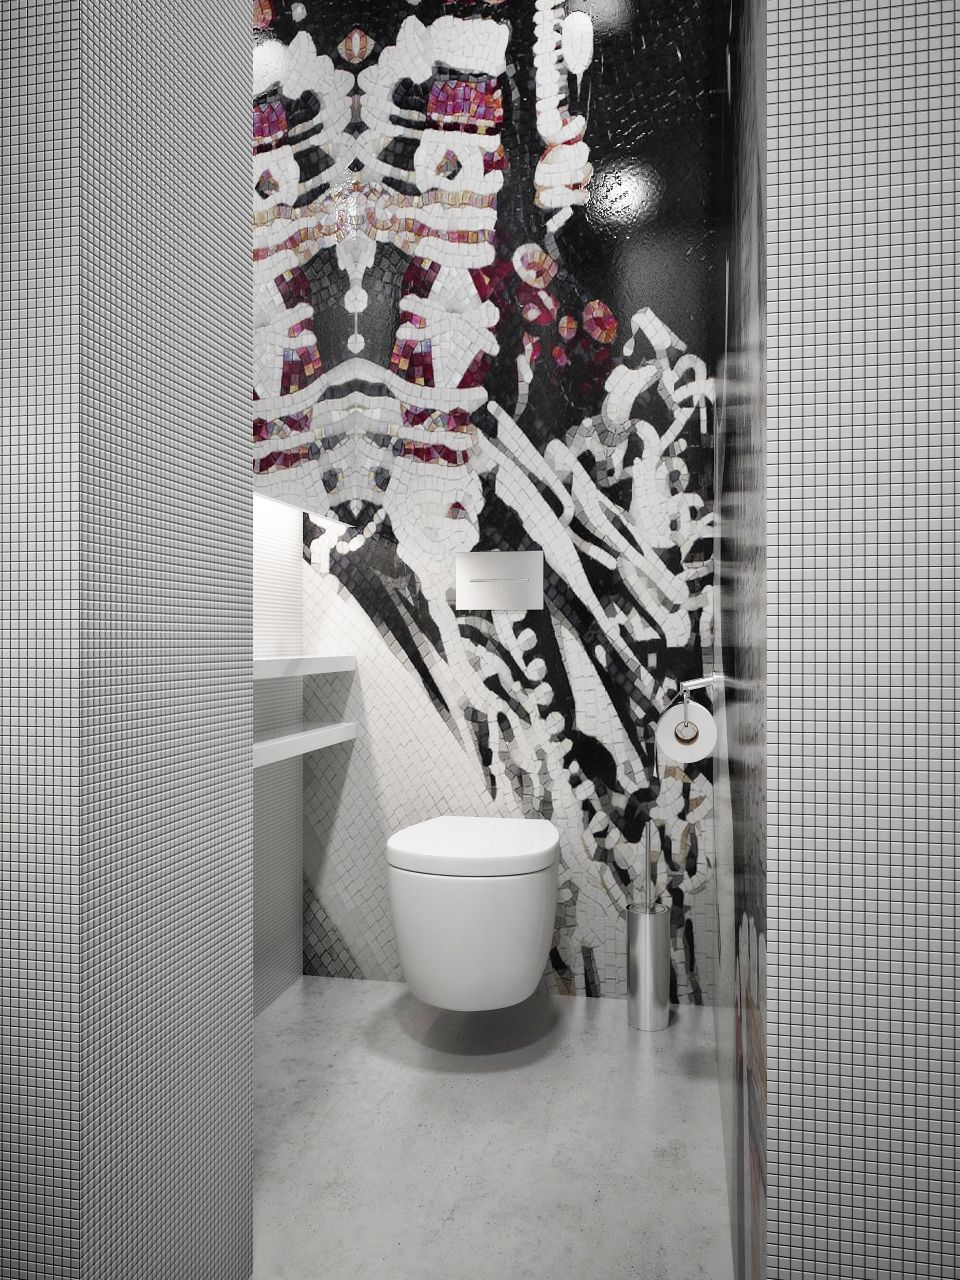 Minimalist Bathroom Designs With Wall Texture Decor Which Looks So ...